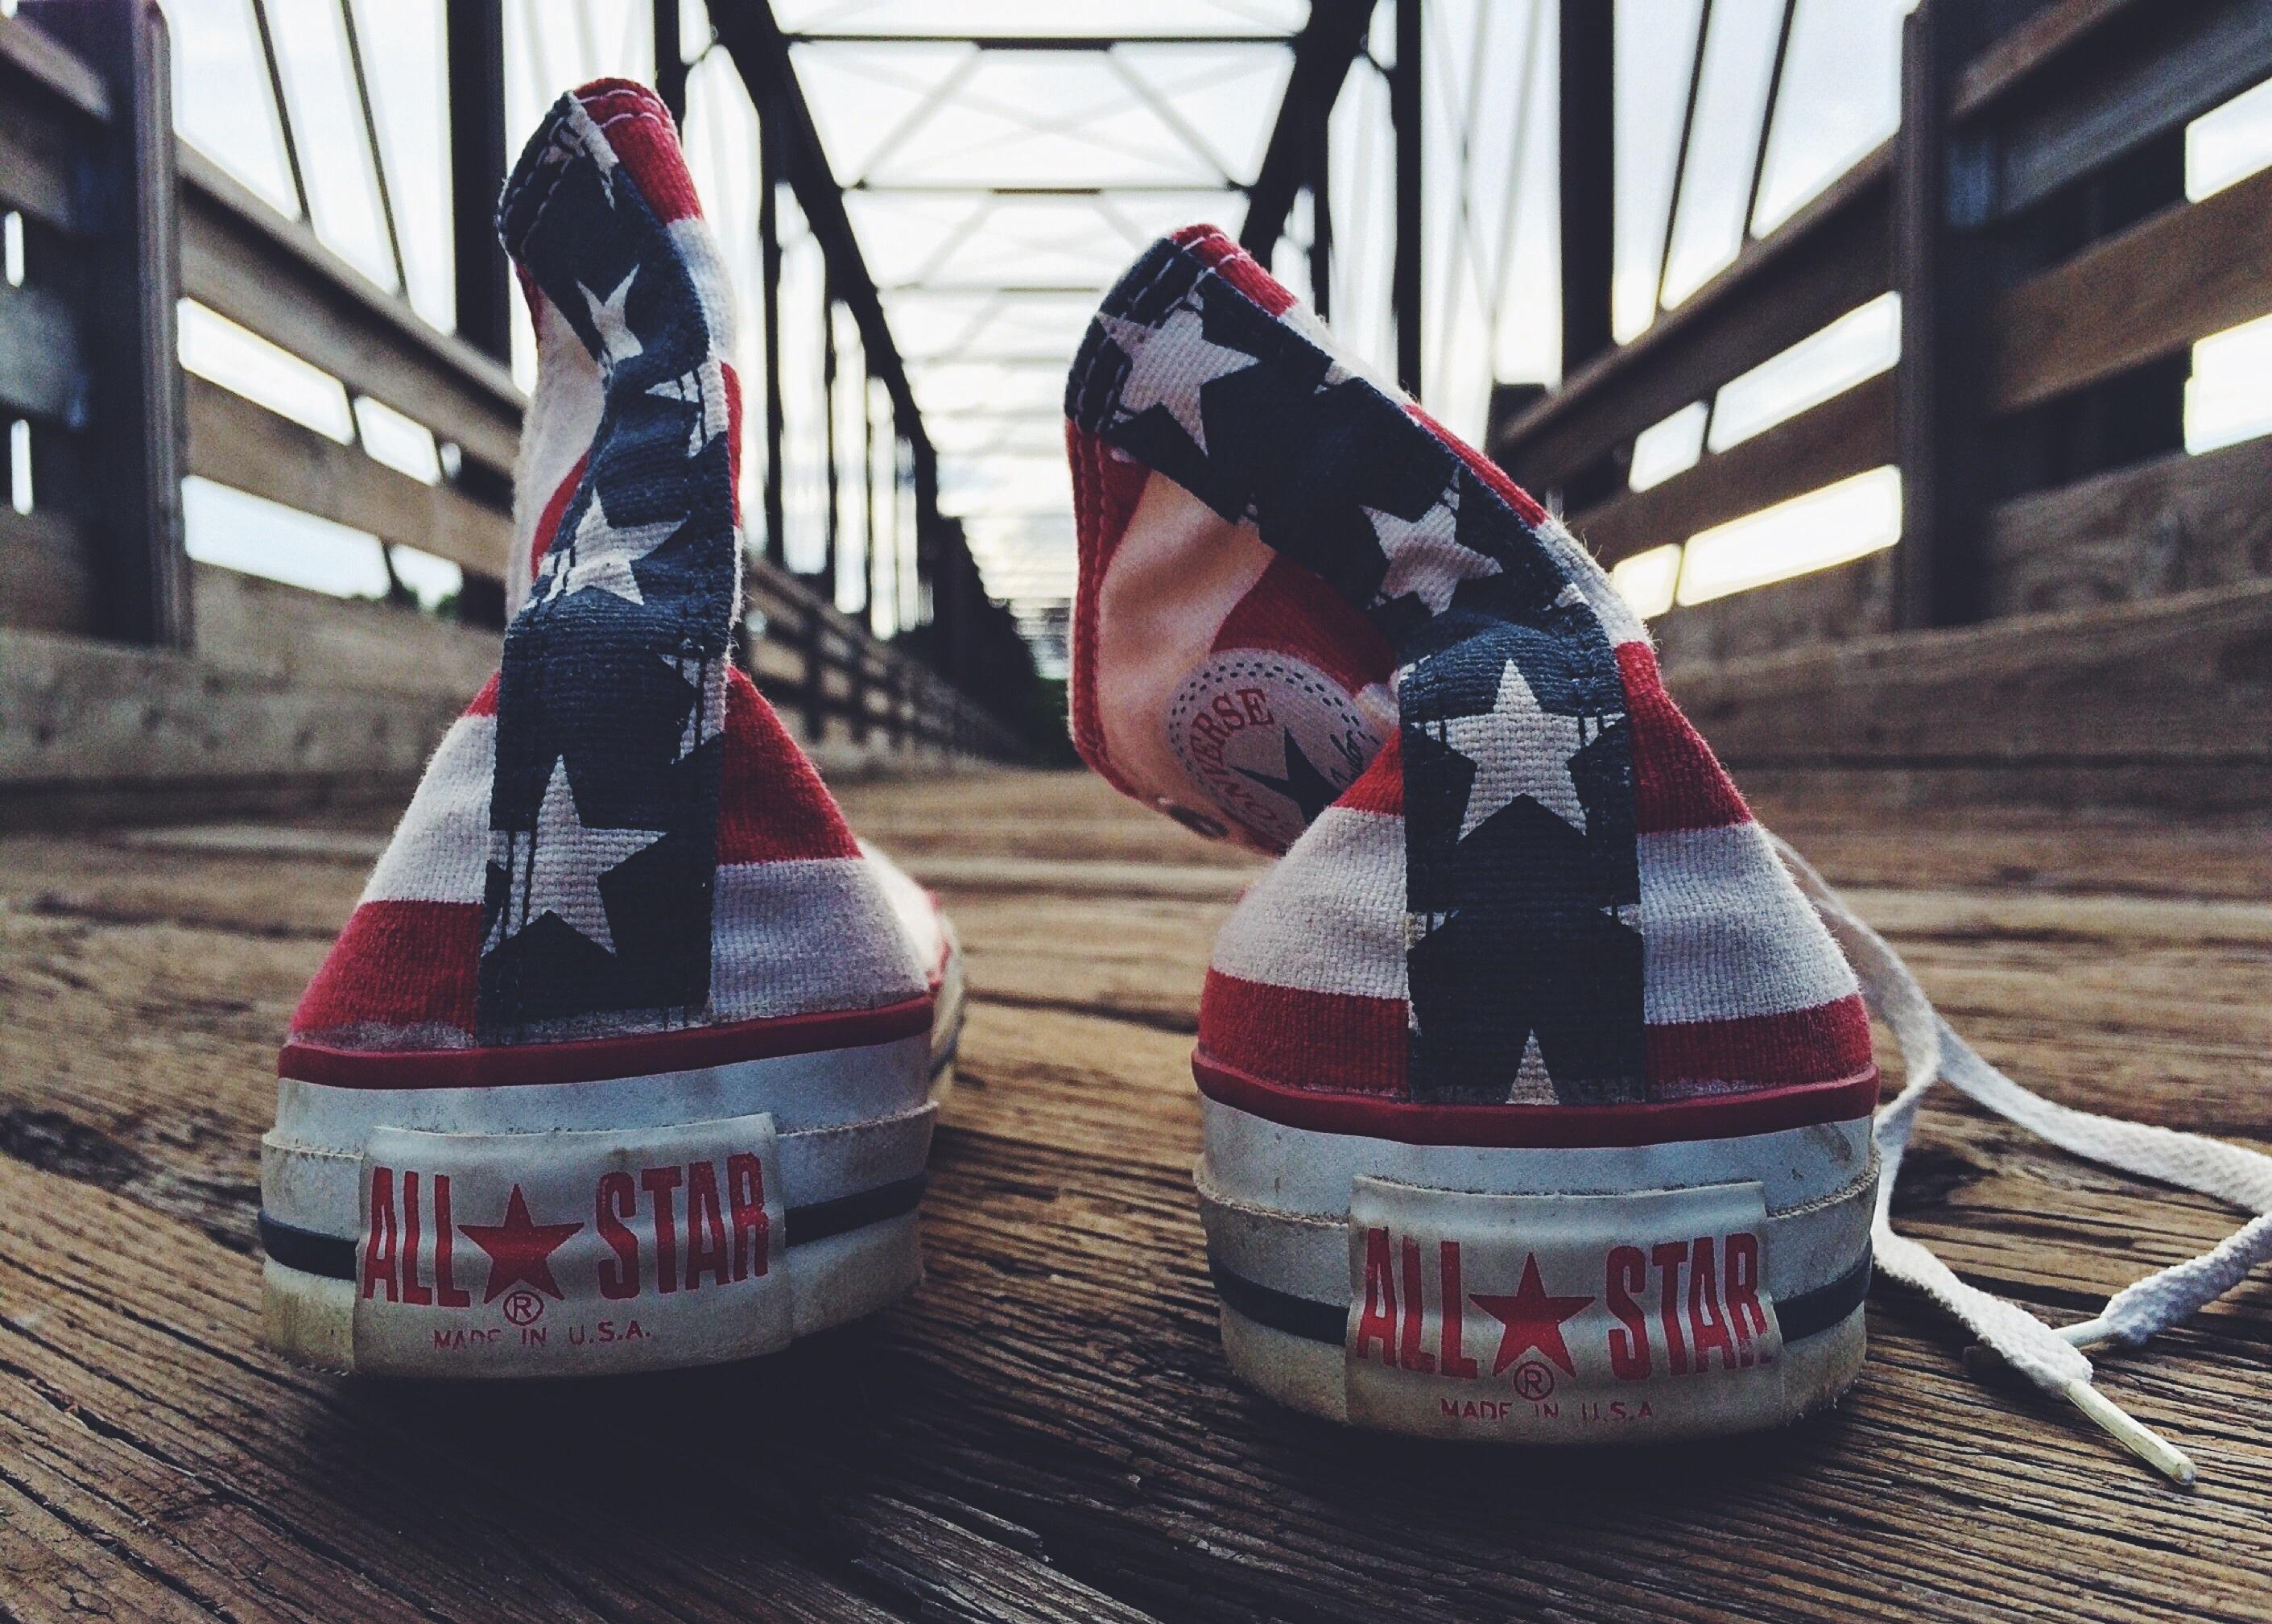 Converse, Shoes, All Star - Converse All Star Hd , HD Wallpaper & Backgrounds